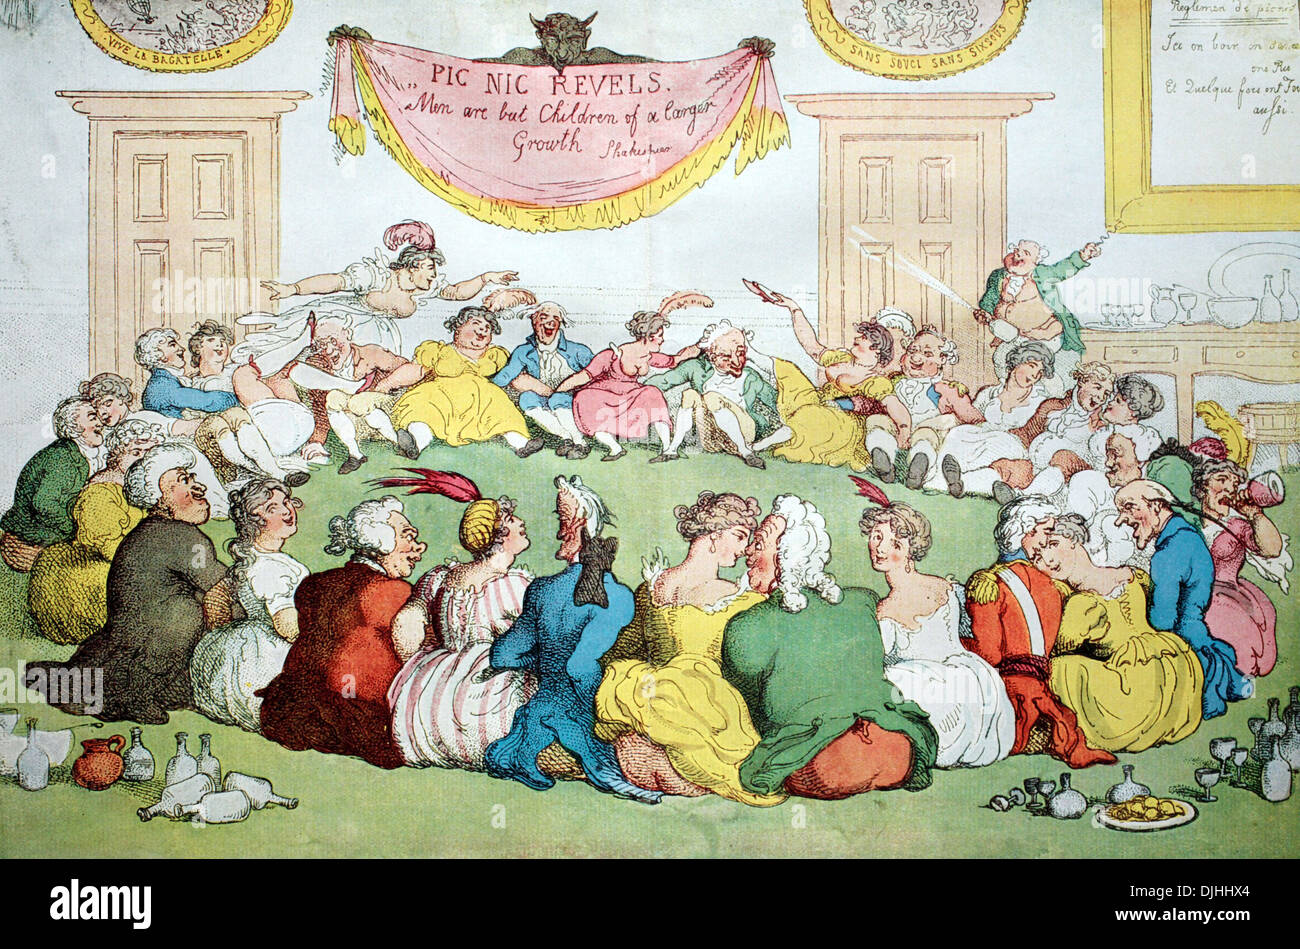 Boisterous party in England around 1800, colored copper engraving by Thomas Rowlandson - Stock Image